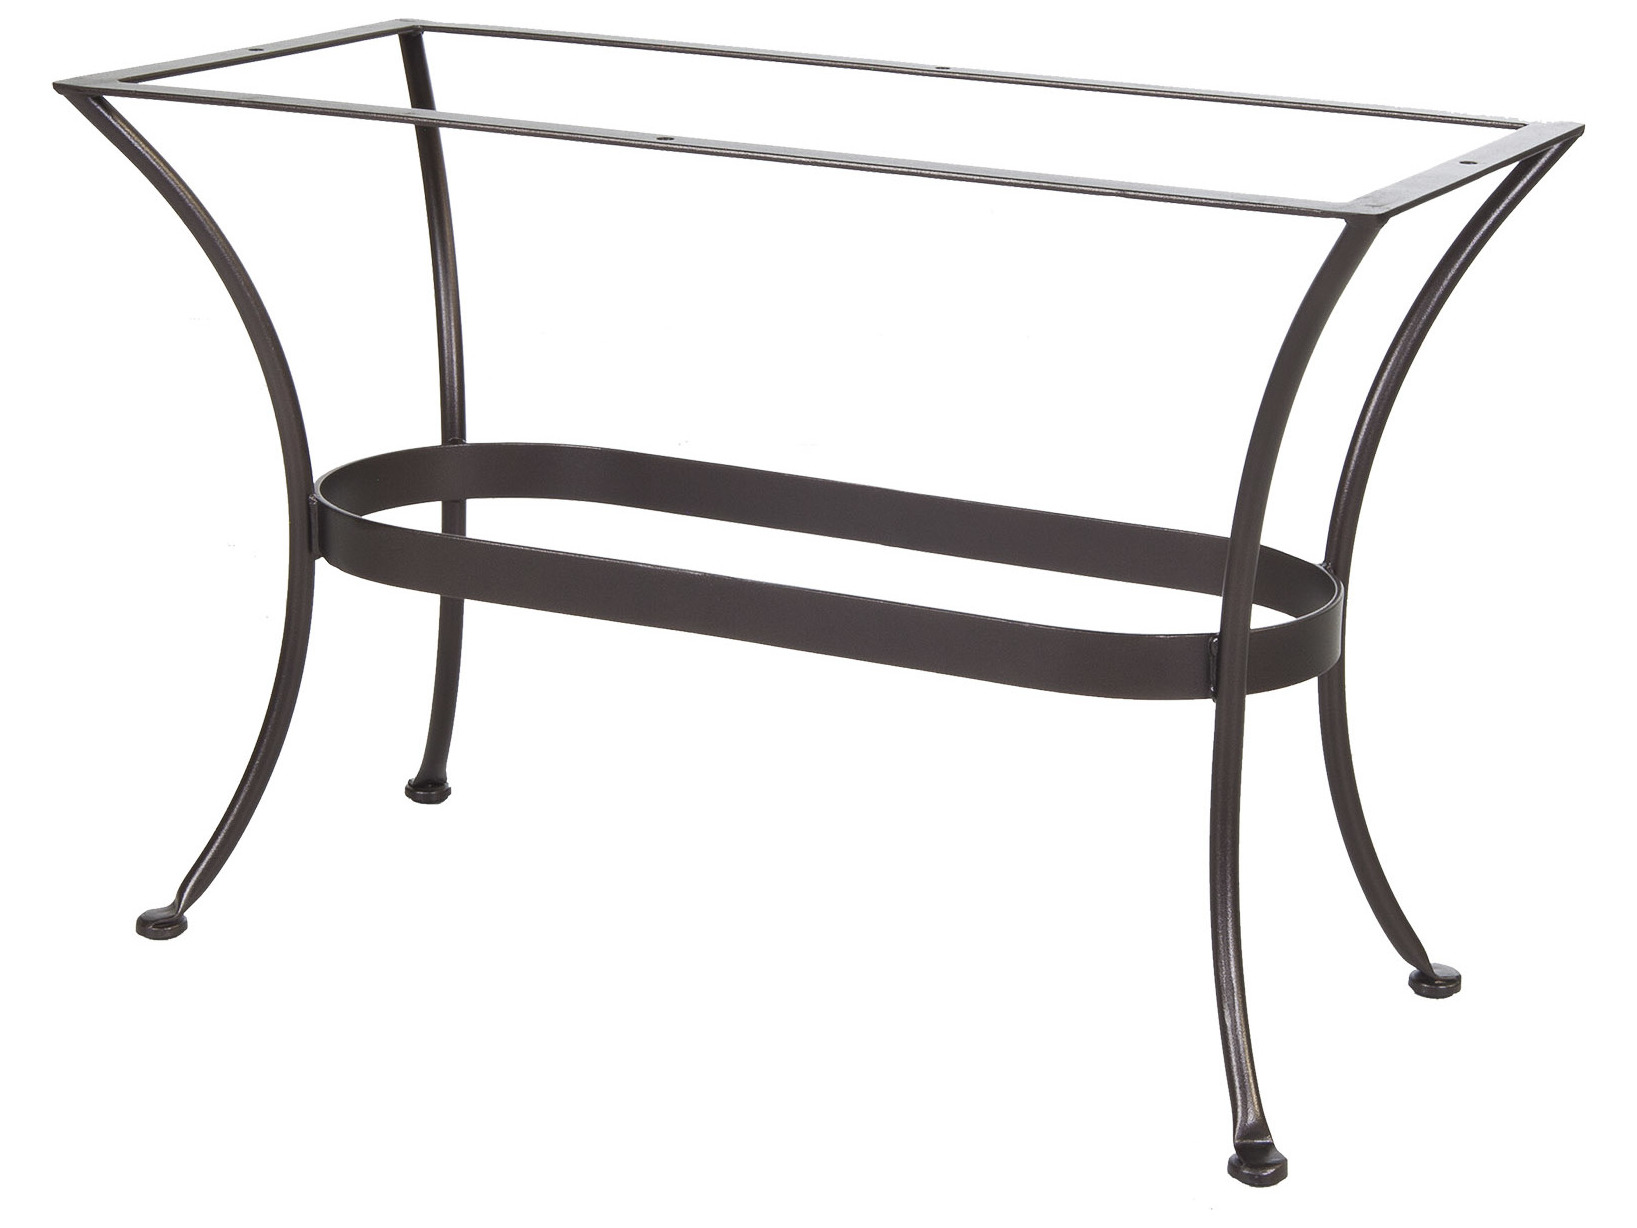 OW Lee Standard Table Base Wrought Iron 20 X 43